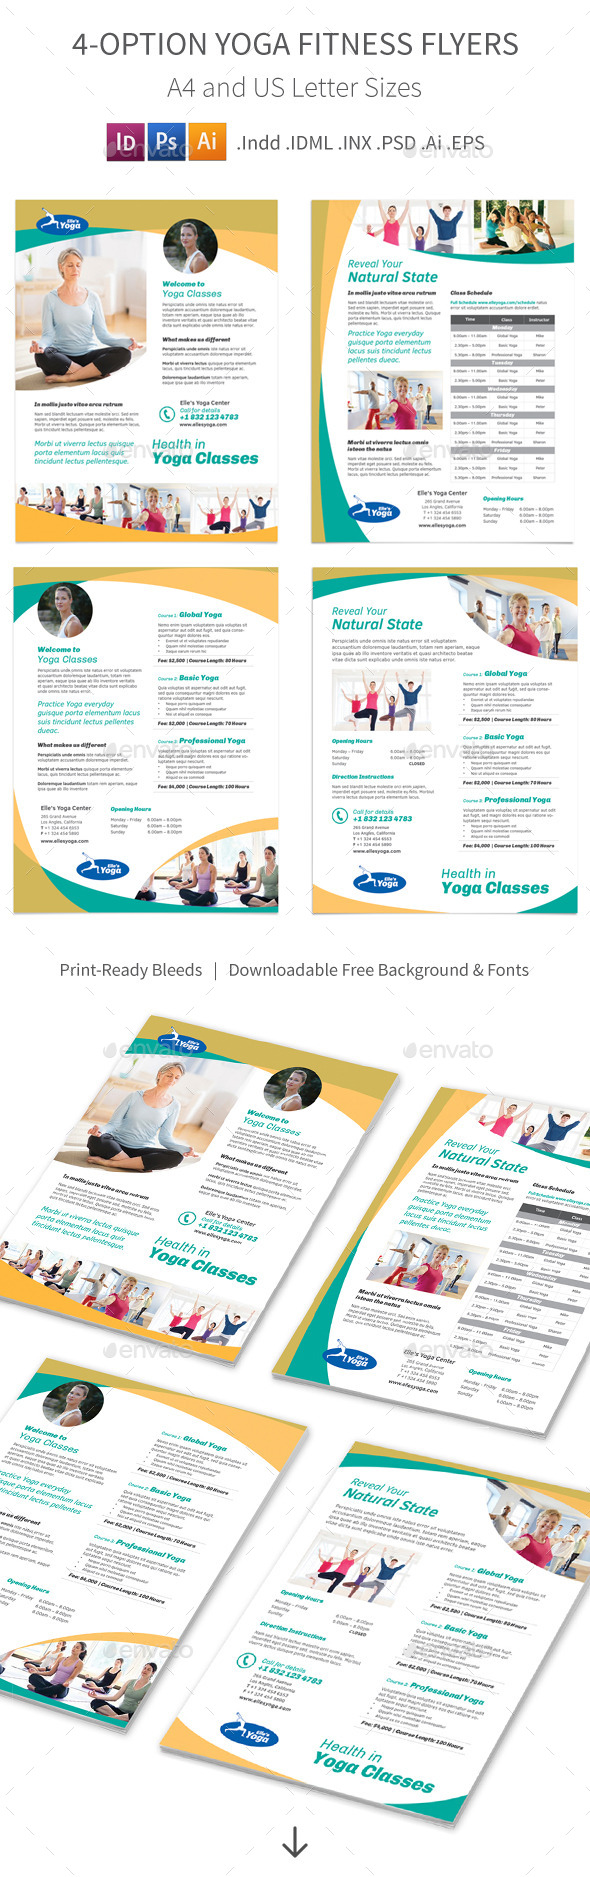 Yoga Fitness Flyers – 4 Options - Corporate Flyers